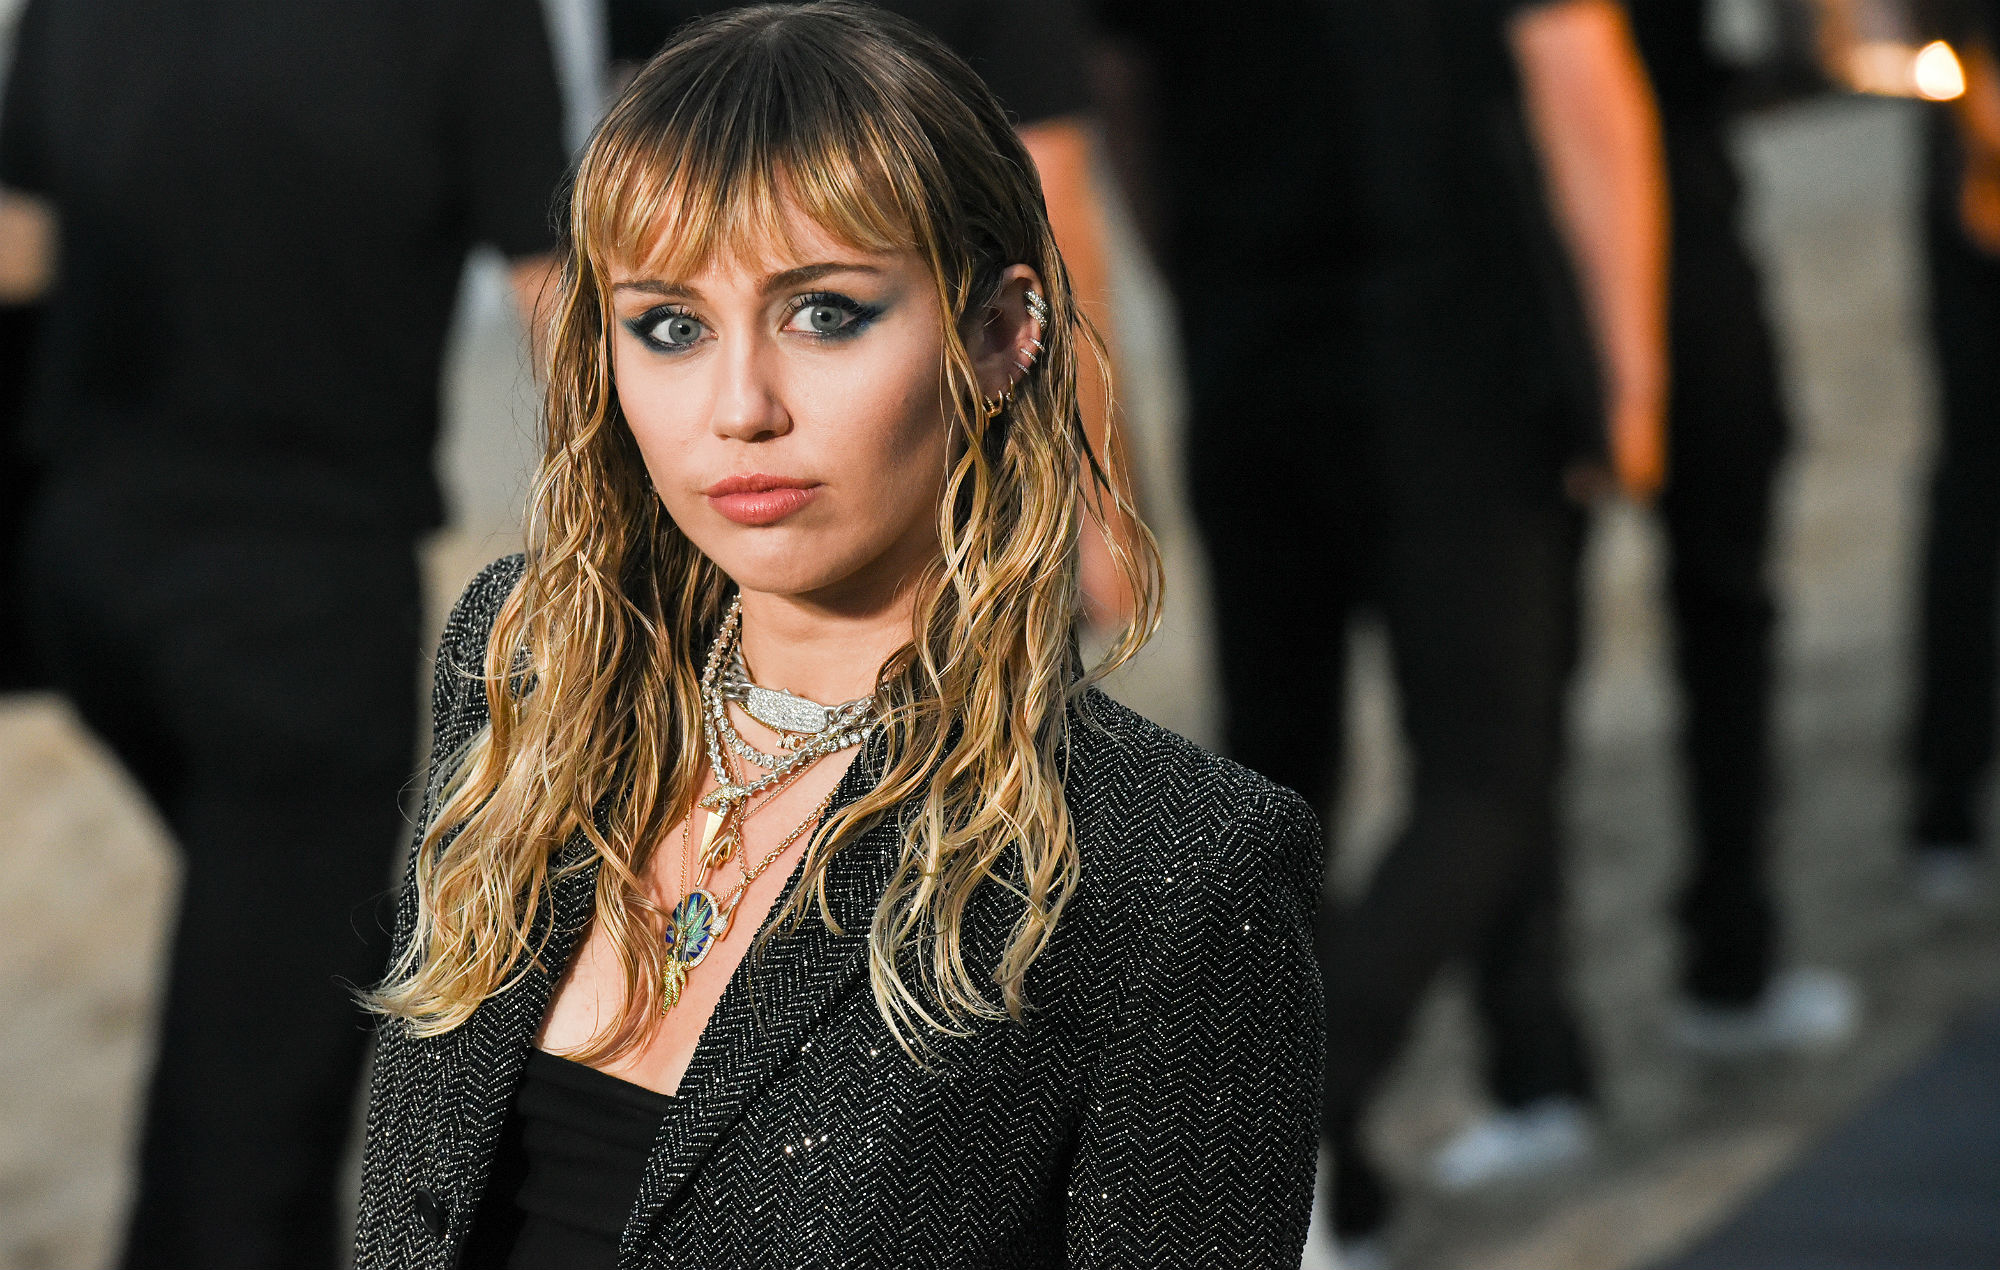 Miley Cyrus reveals 'unconditional love' in candid post